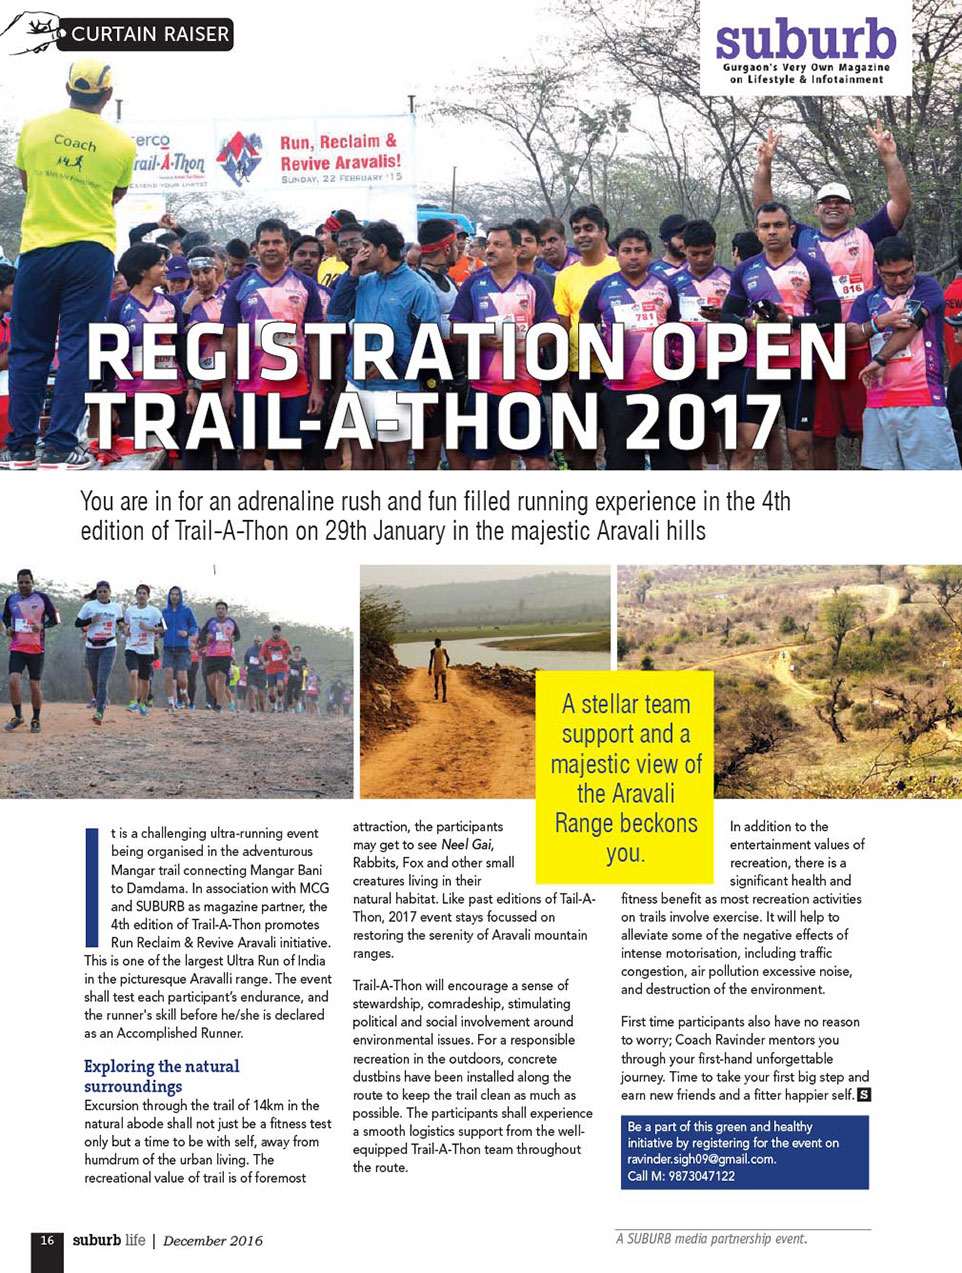 Trail-A-Thon 2017 Gurgaon